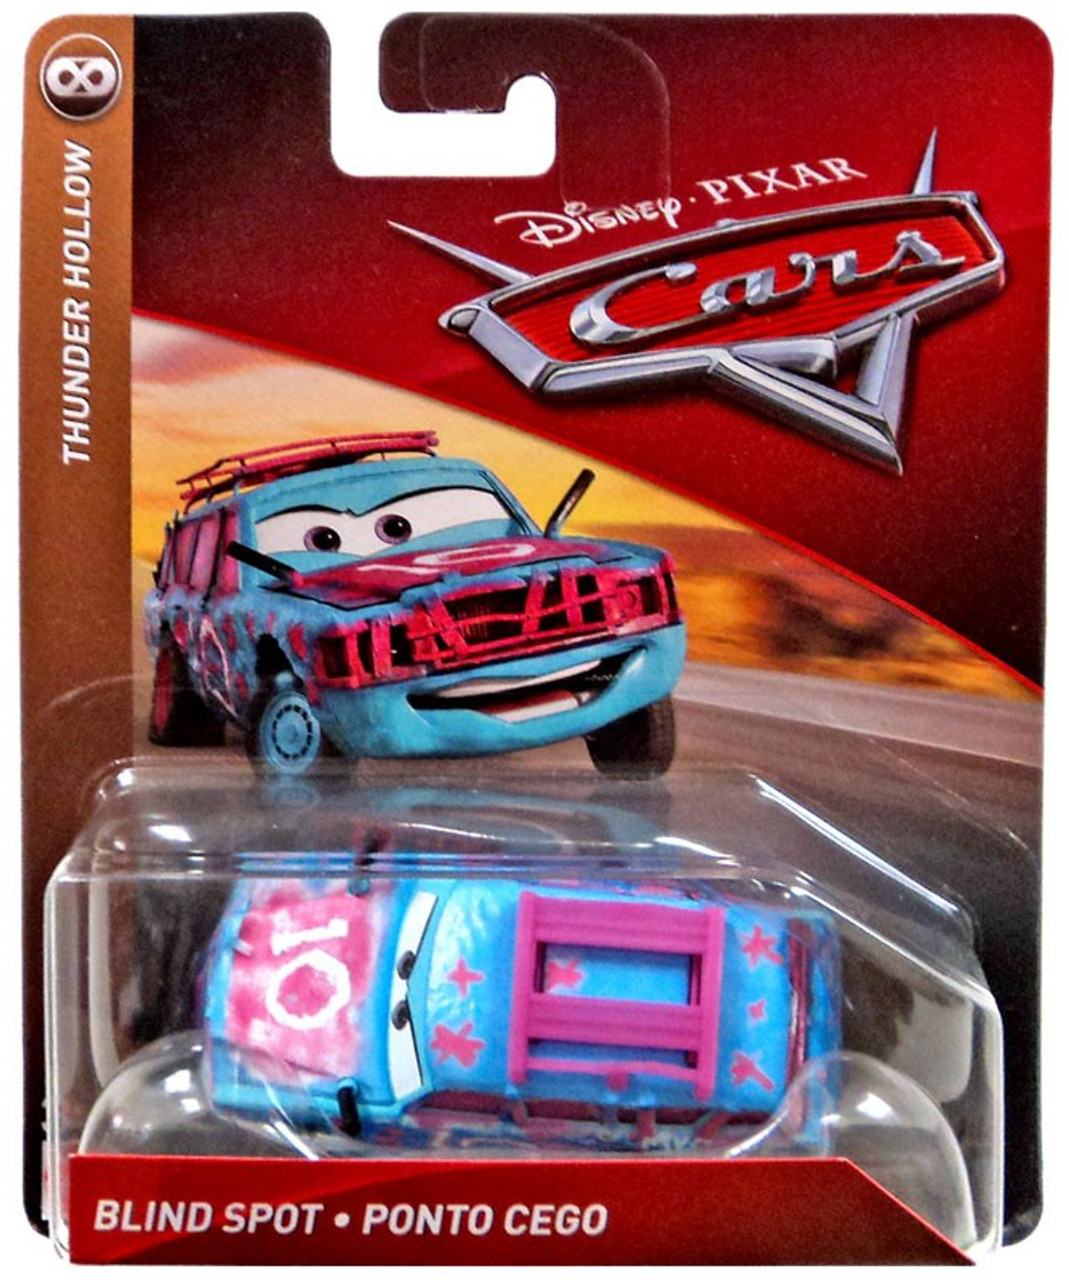 Disney cars cars 3 thunder hollow blind spot 155 diecast car mattel toys toywiz - Coloriage cars 3 thunder hollow ...